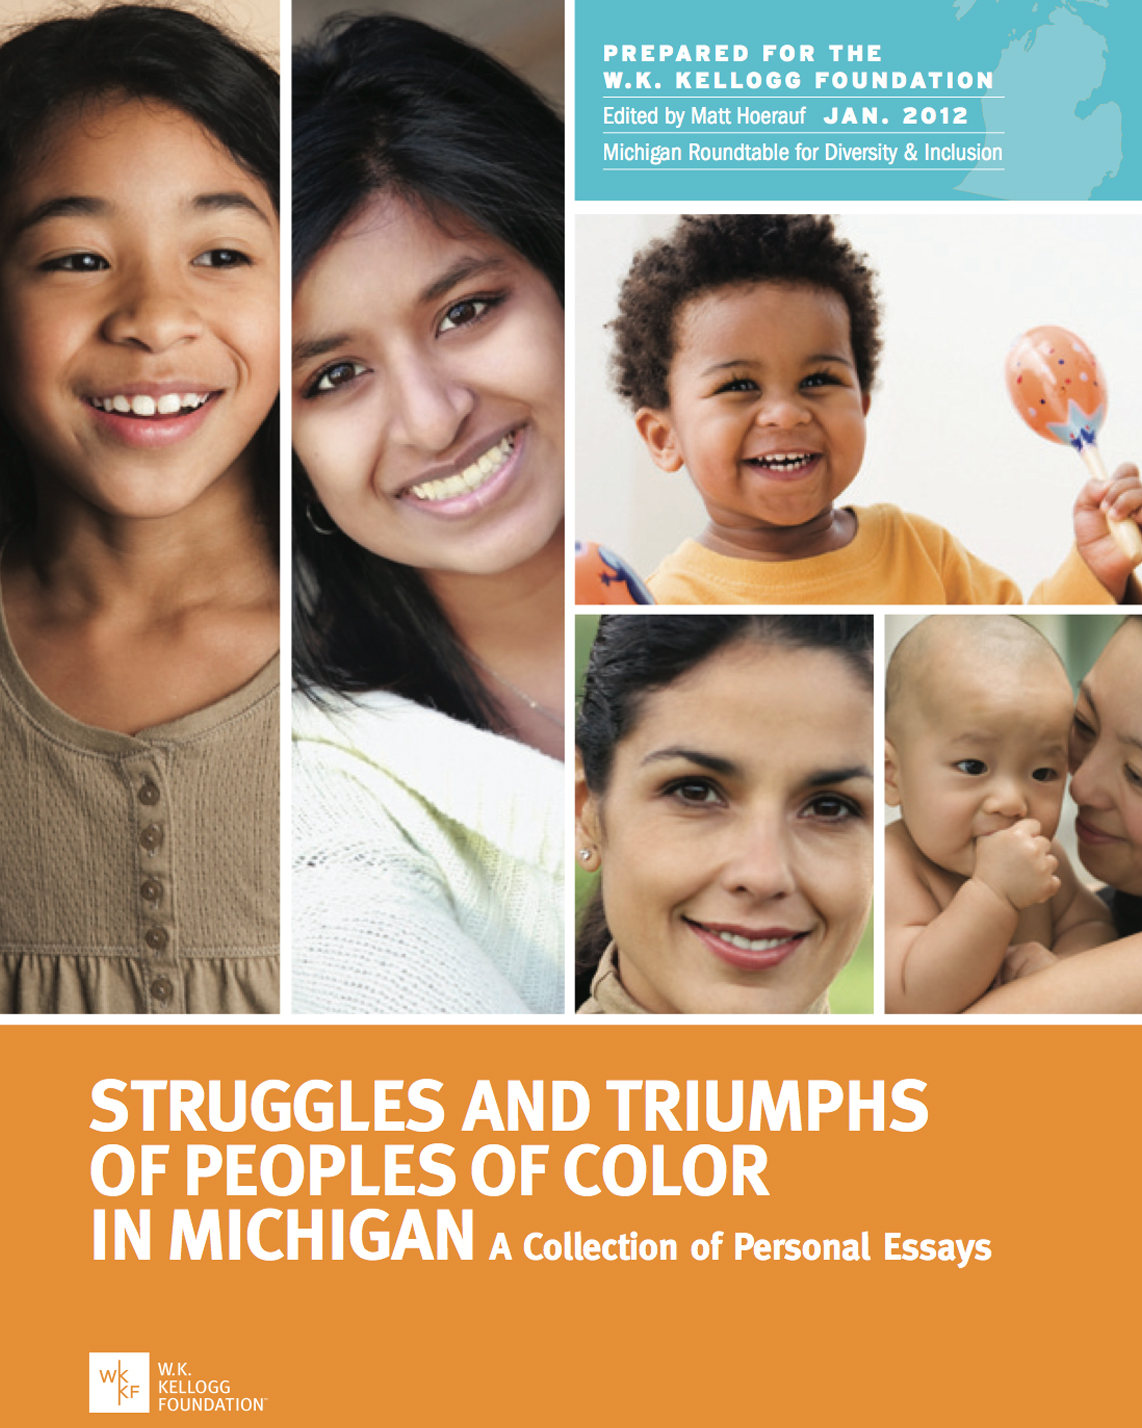 Struggles and Triumphs of Peoples of Color in Michigan - Full Report - W.K. Kellogg Foundation